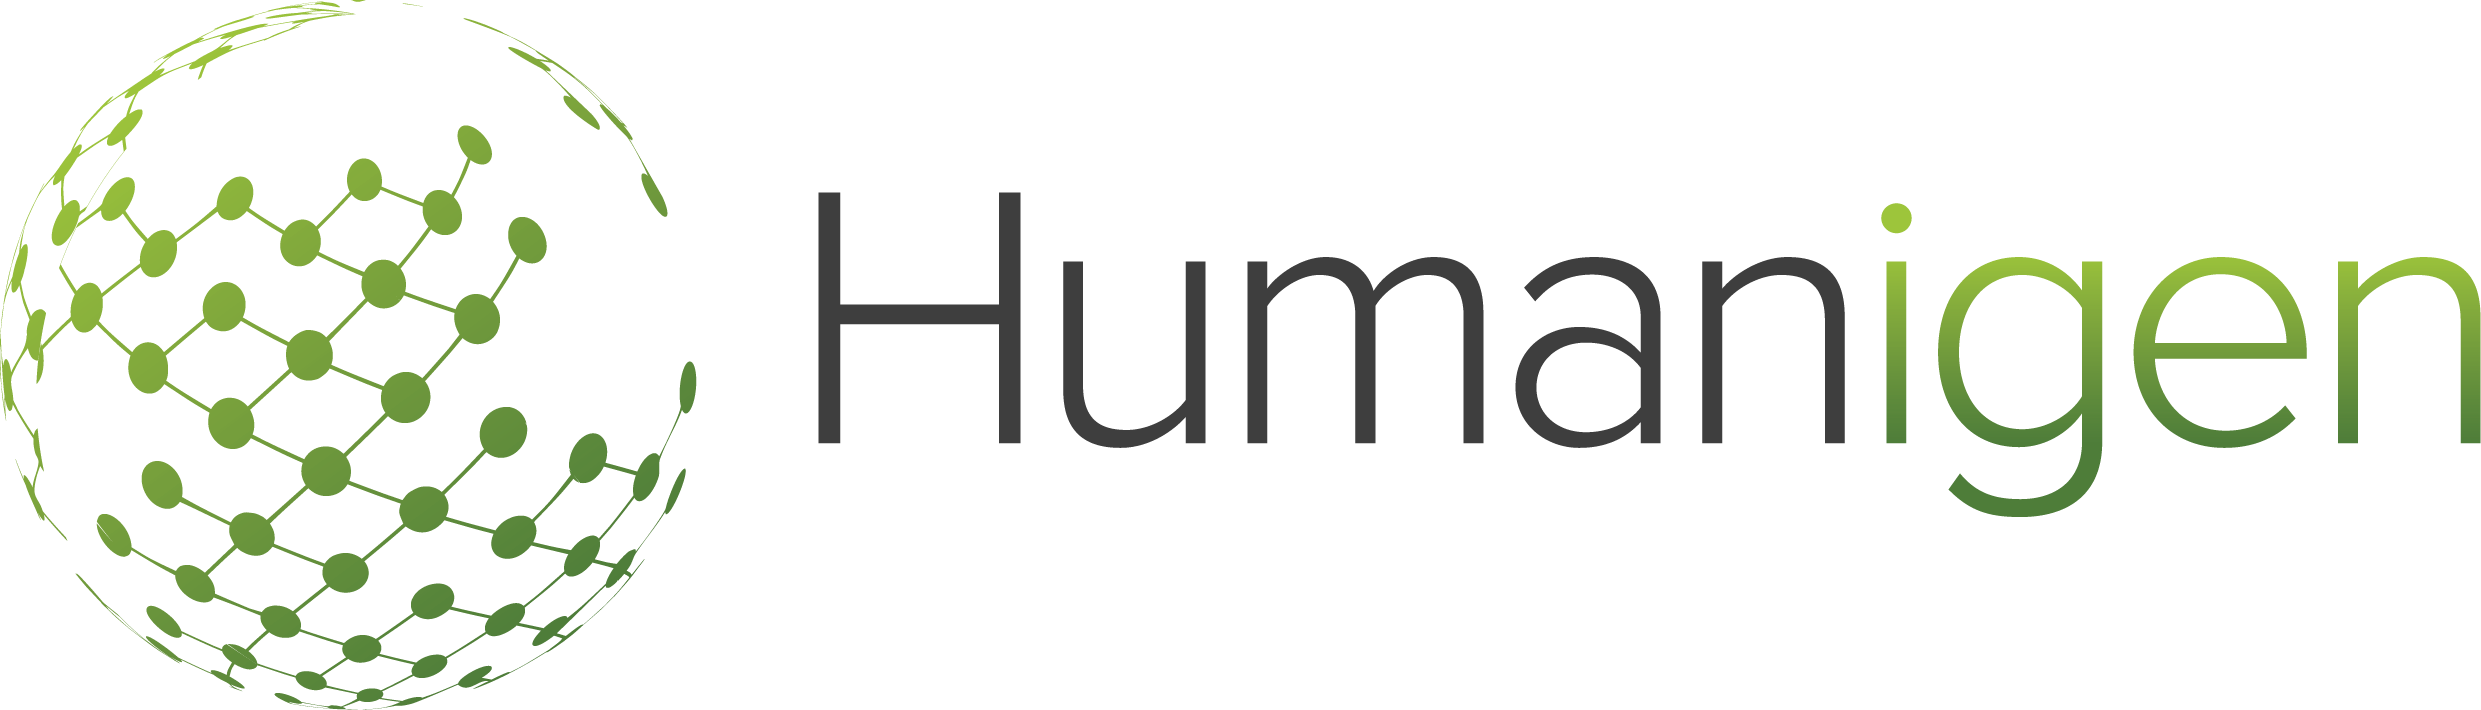 Humanigen-logo-color-on-white.png